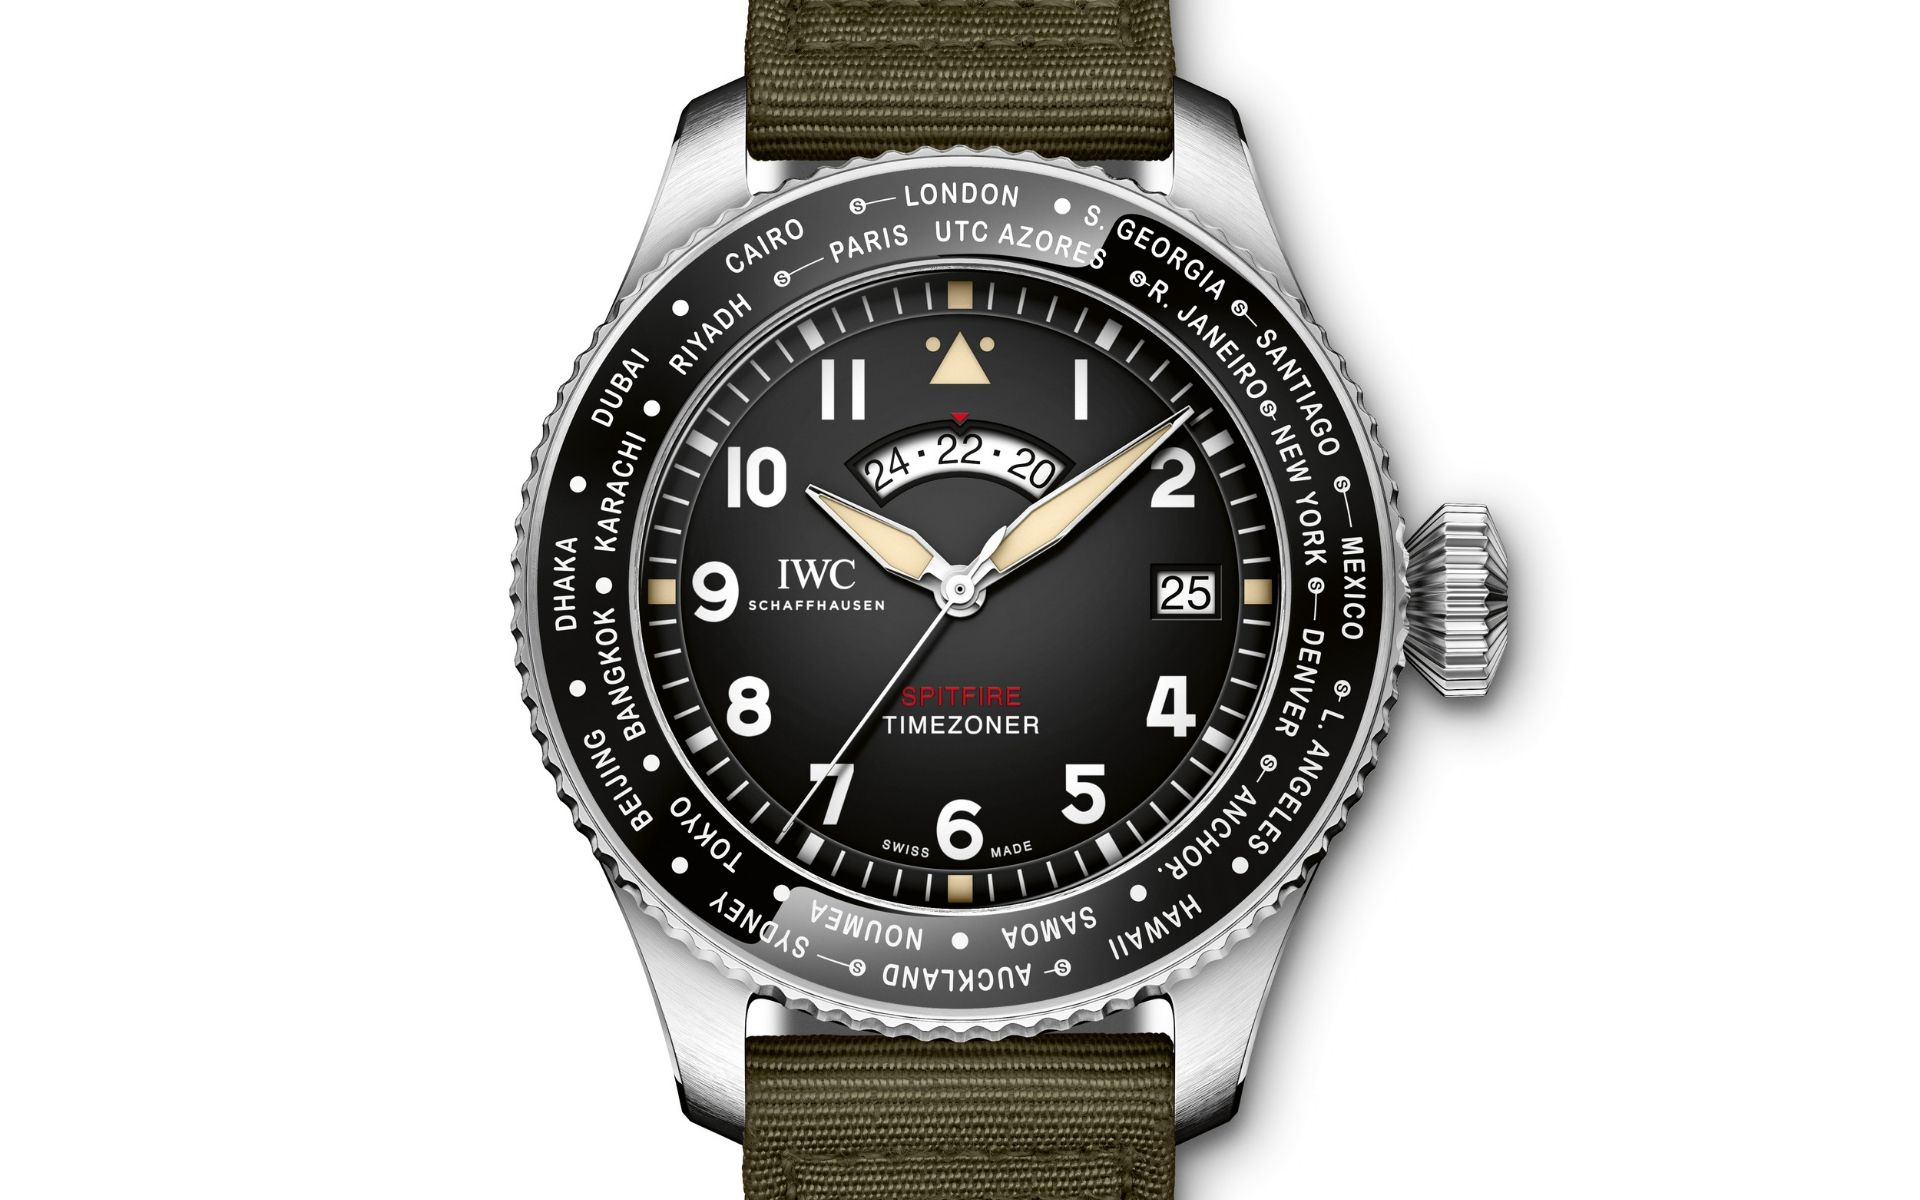 Pre-SIHH 2019: IWC Schaffhausen Is Set To Soar With New Pilot's Watches